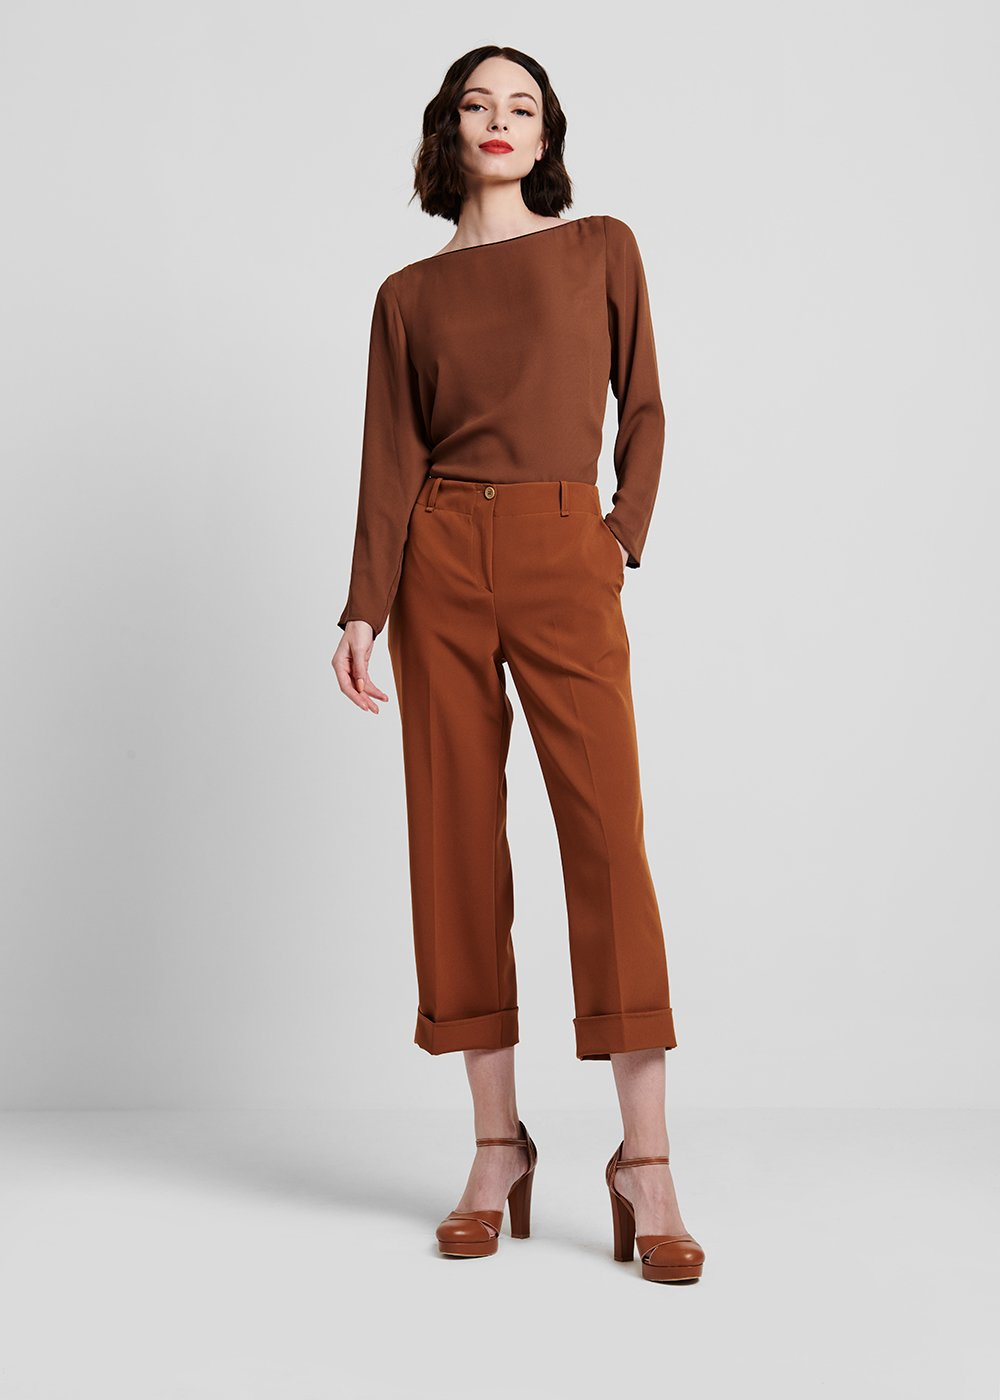 Blouse in faux satin fabric with boat neck - Brown - Woman